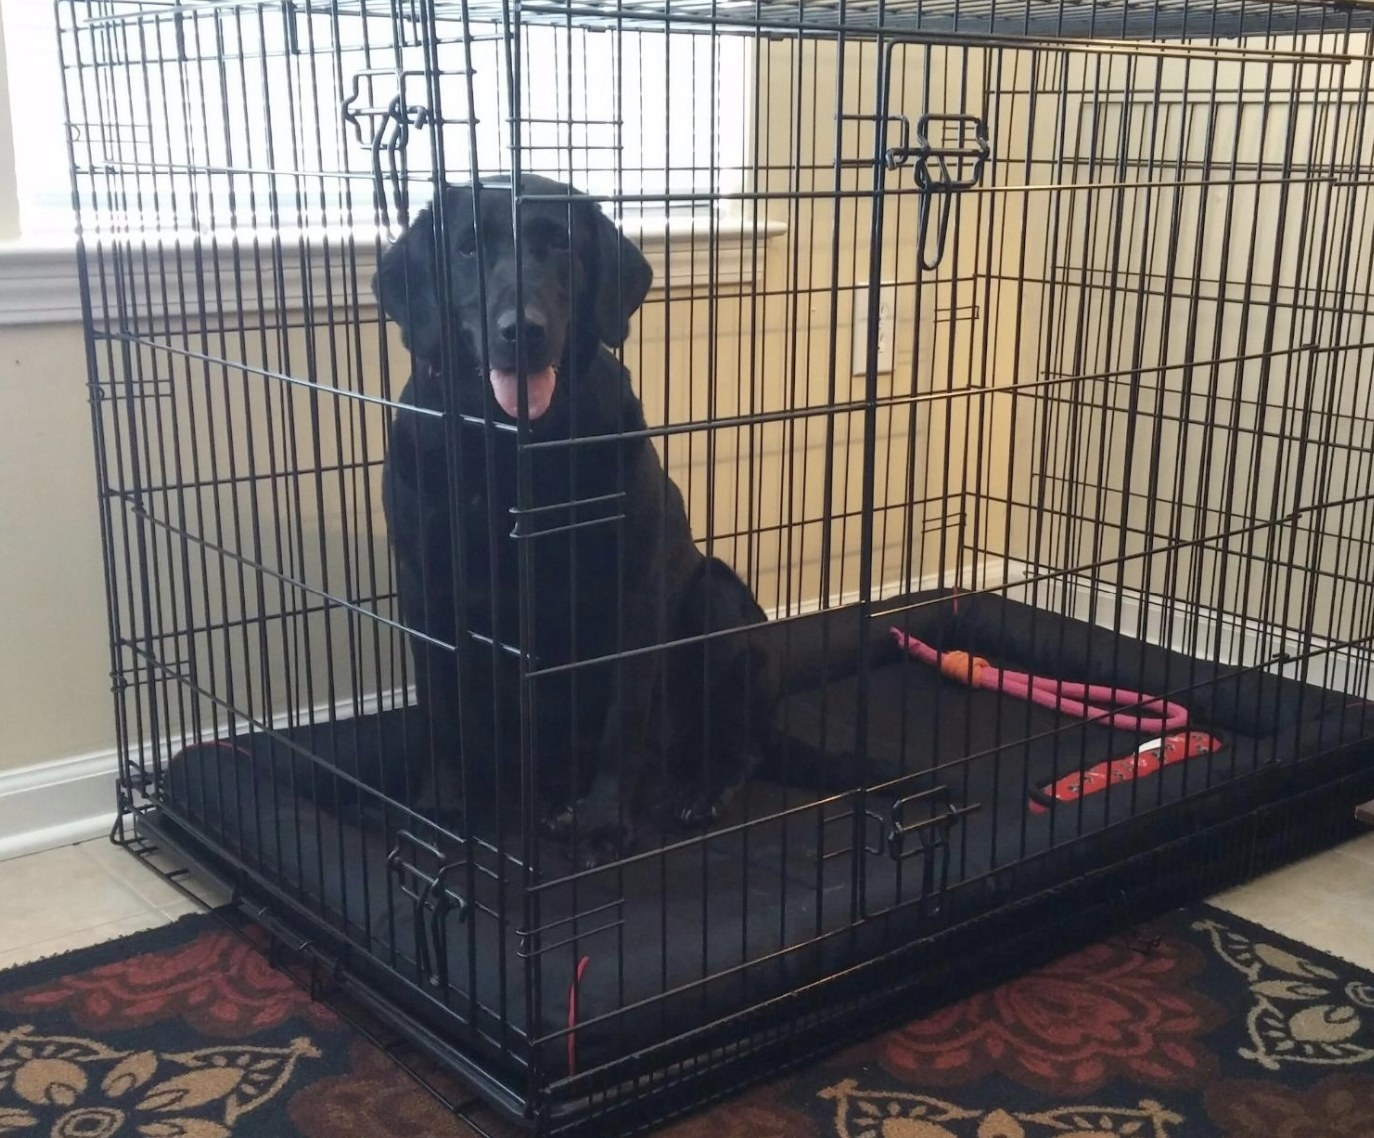 A black lab sitting in a dog kennel